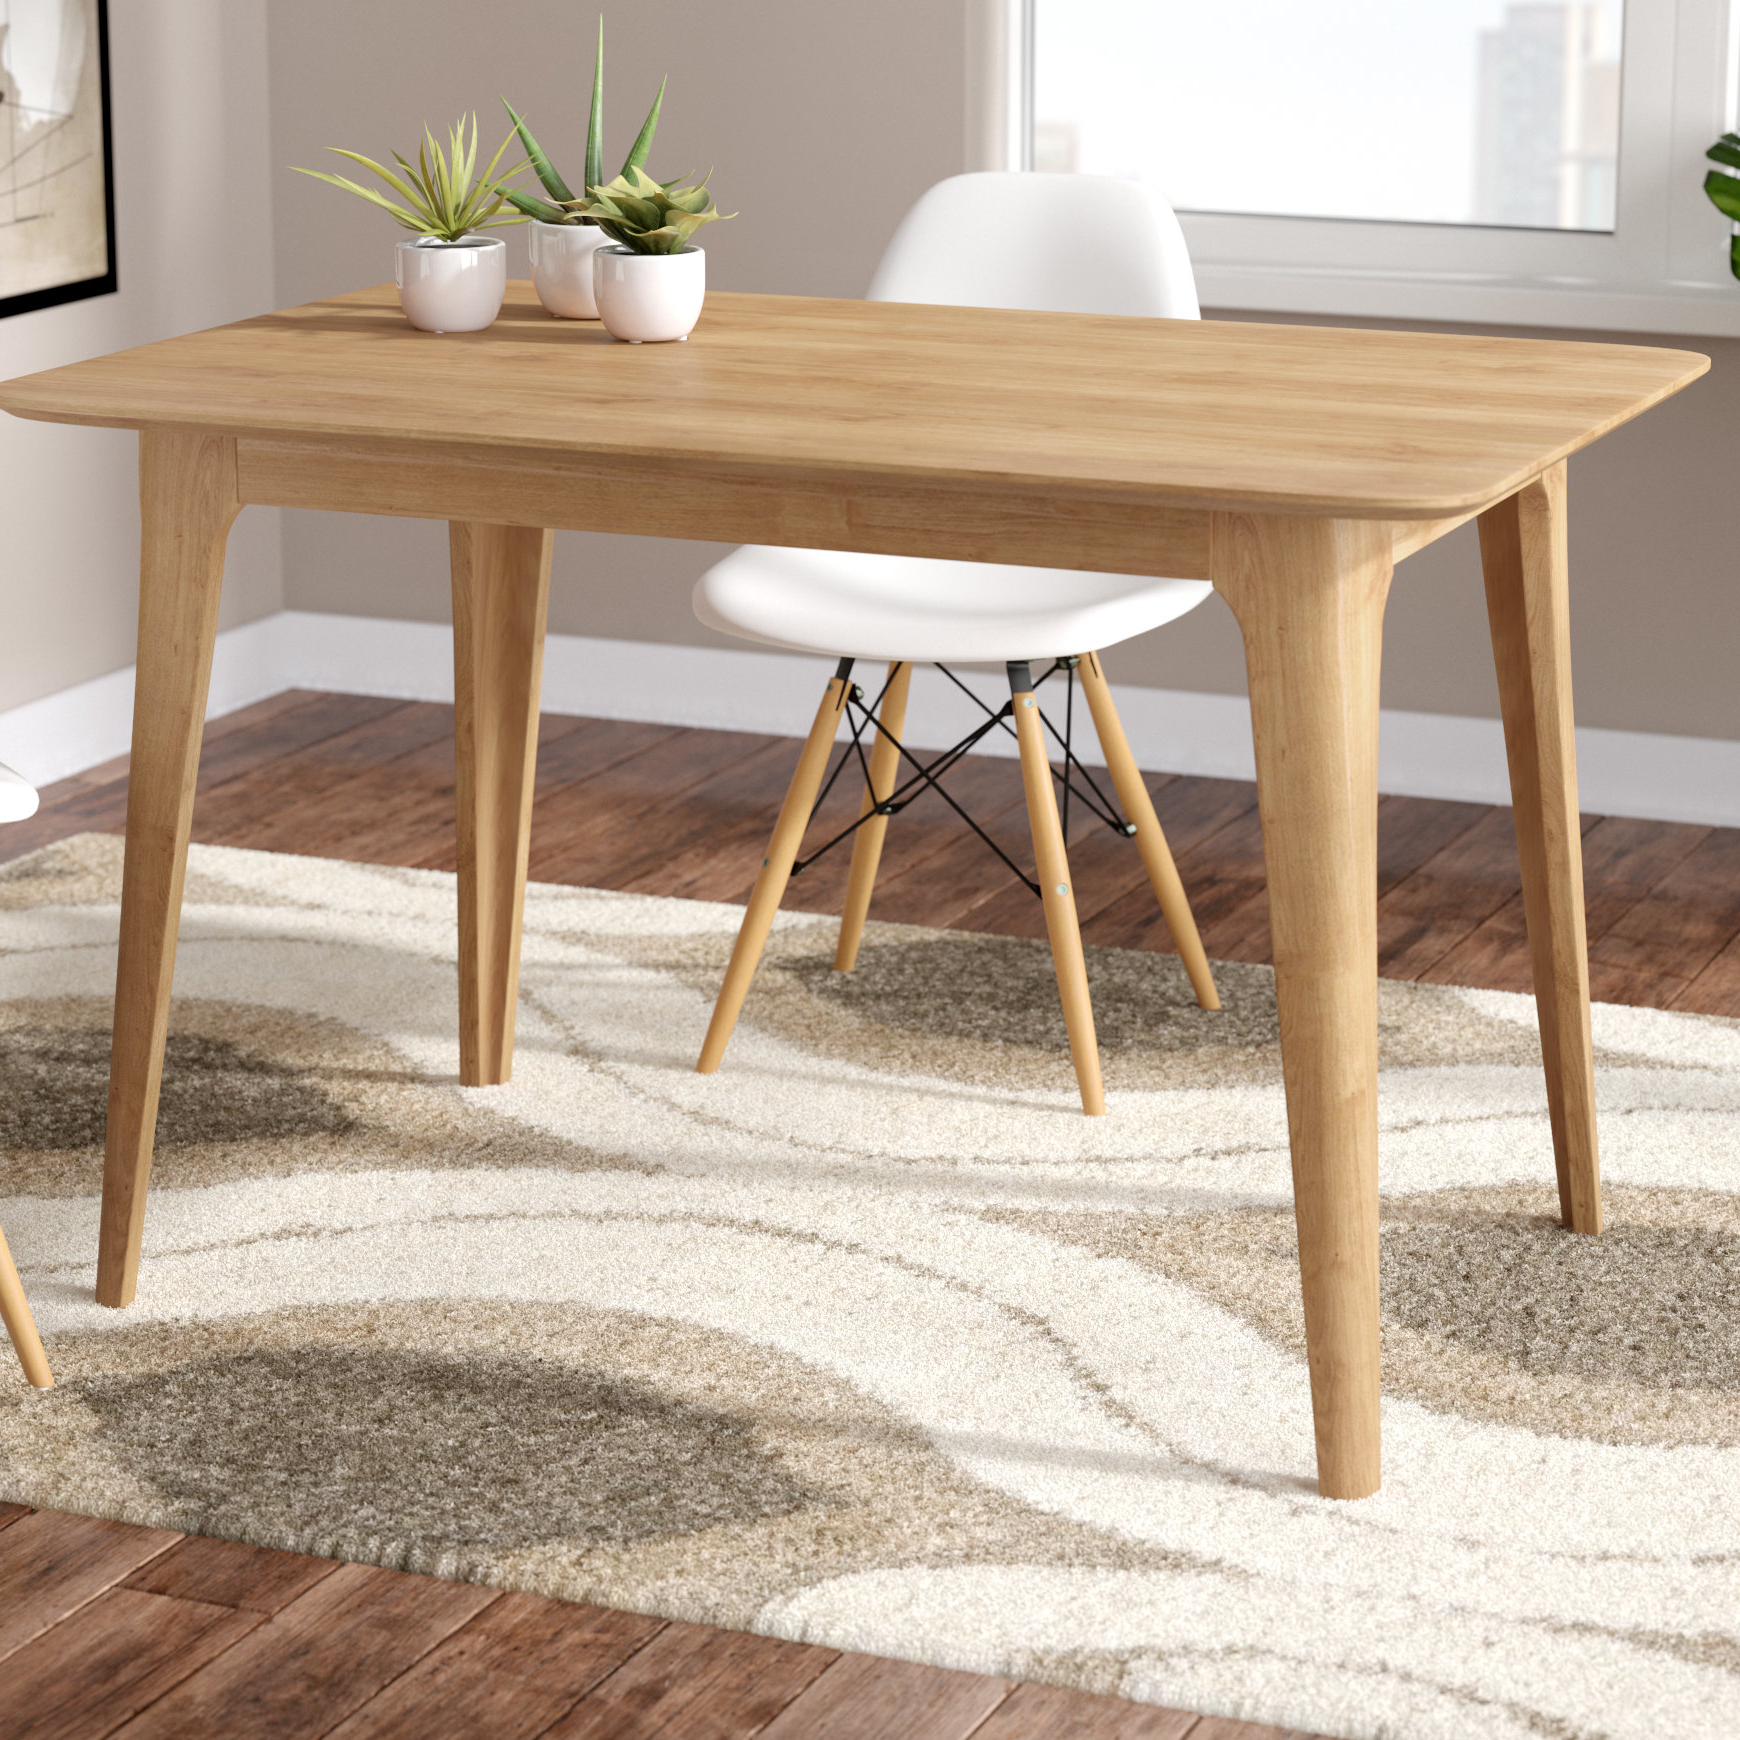 Wayfair Throughout Most Recent Amir 5 Piece Solid Wood Dining Sets (Set Of 5) (View 22 of 25)